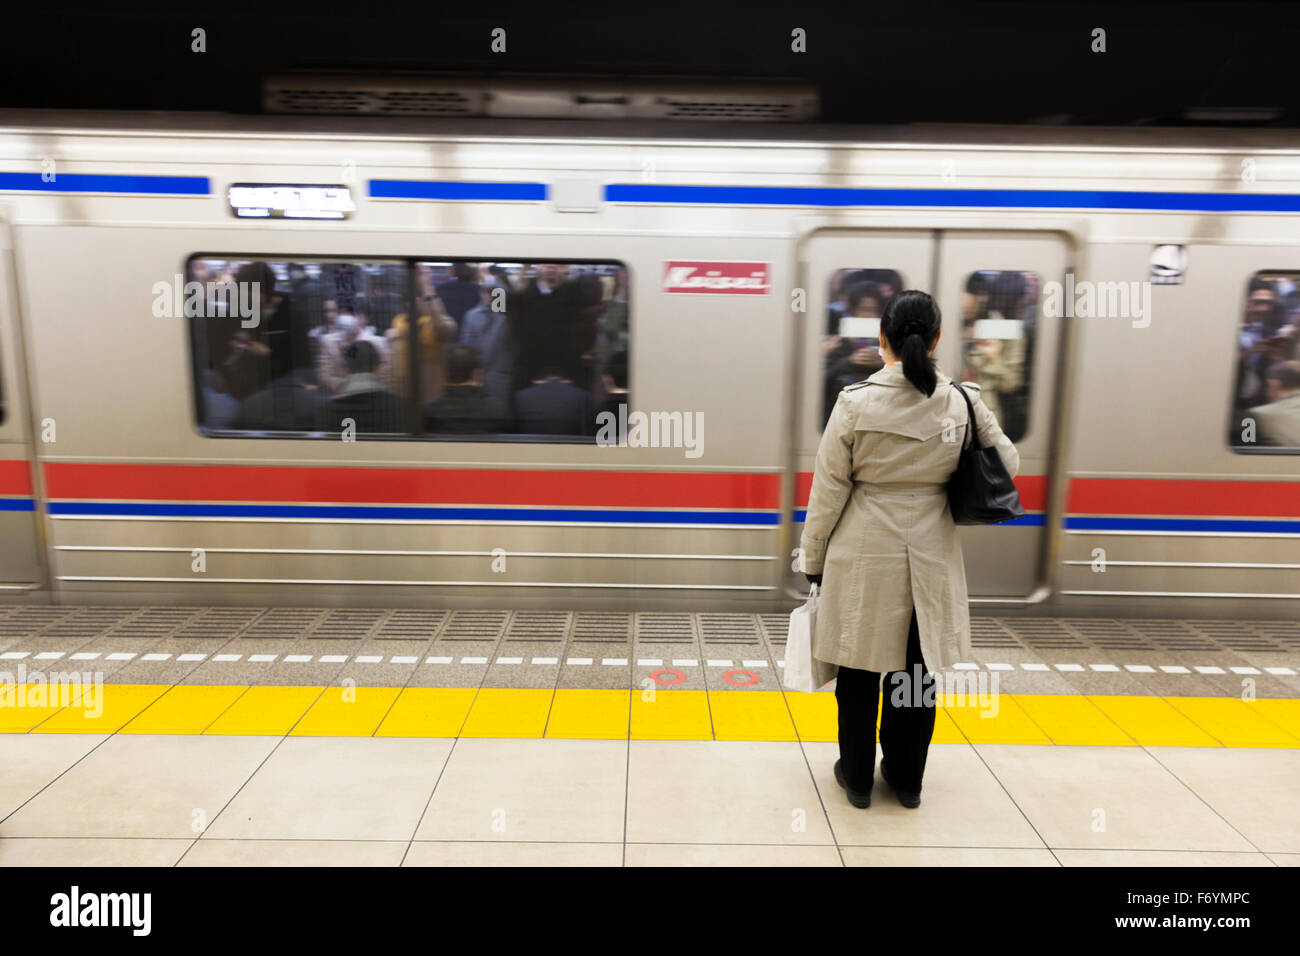 A Japanese woman waiting at the metro for a passing train - Stock Image